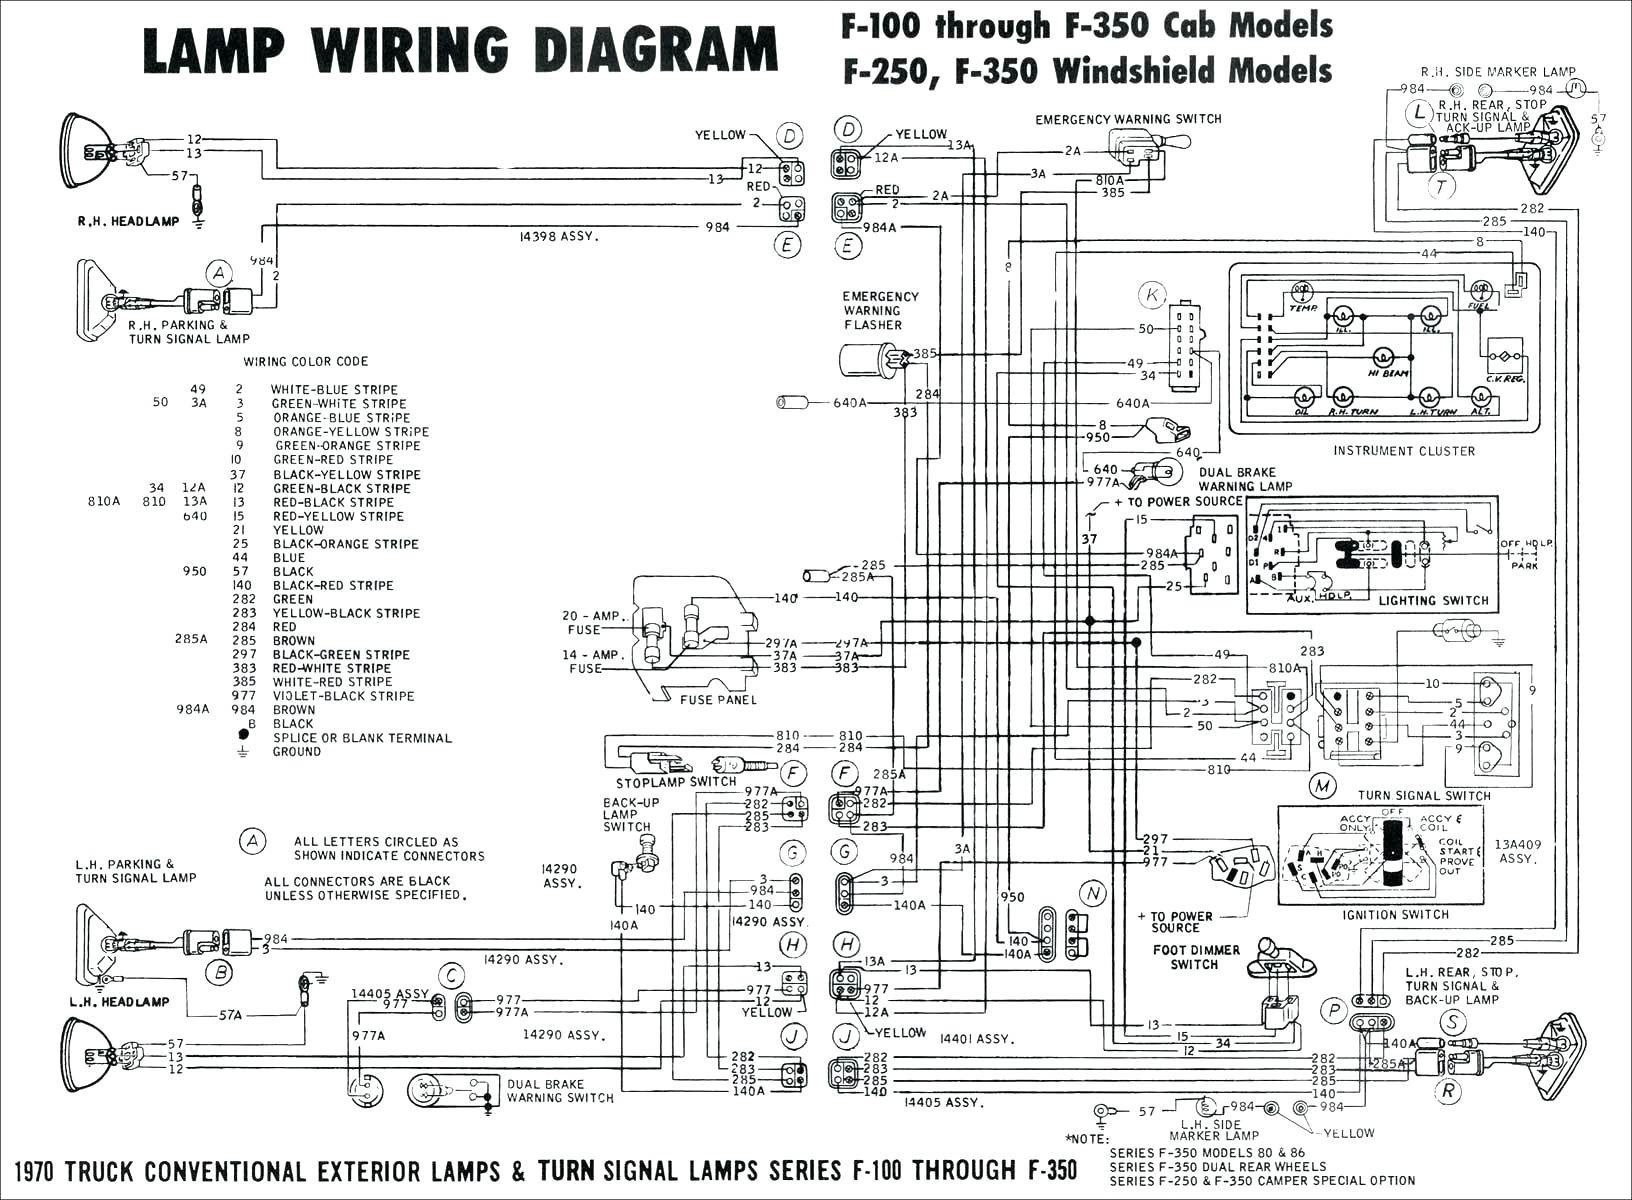 2006 Jeep Wrangler Wiring Diagram | Free Wiring Diagram